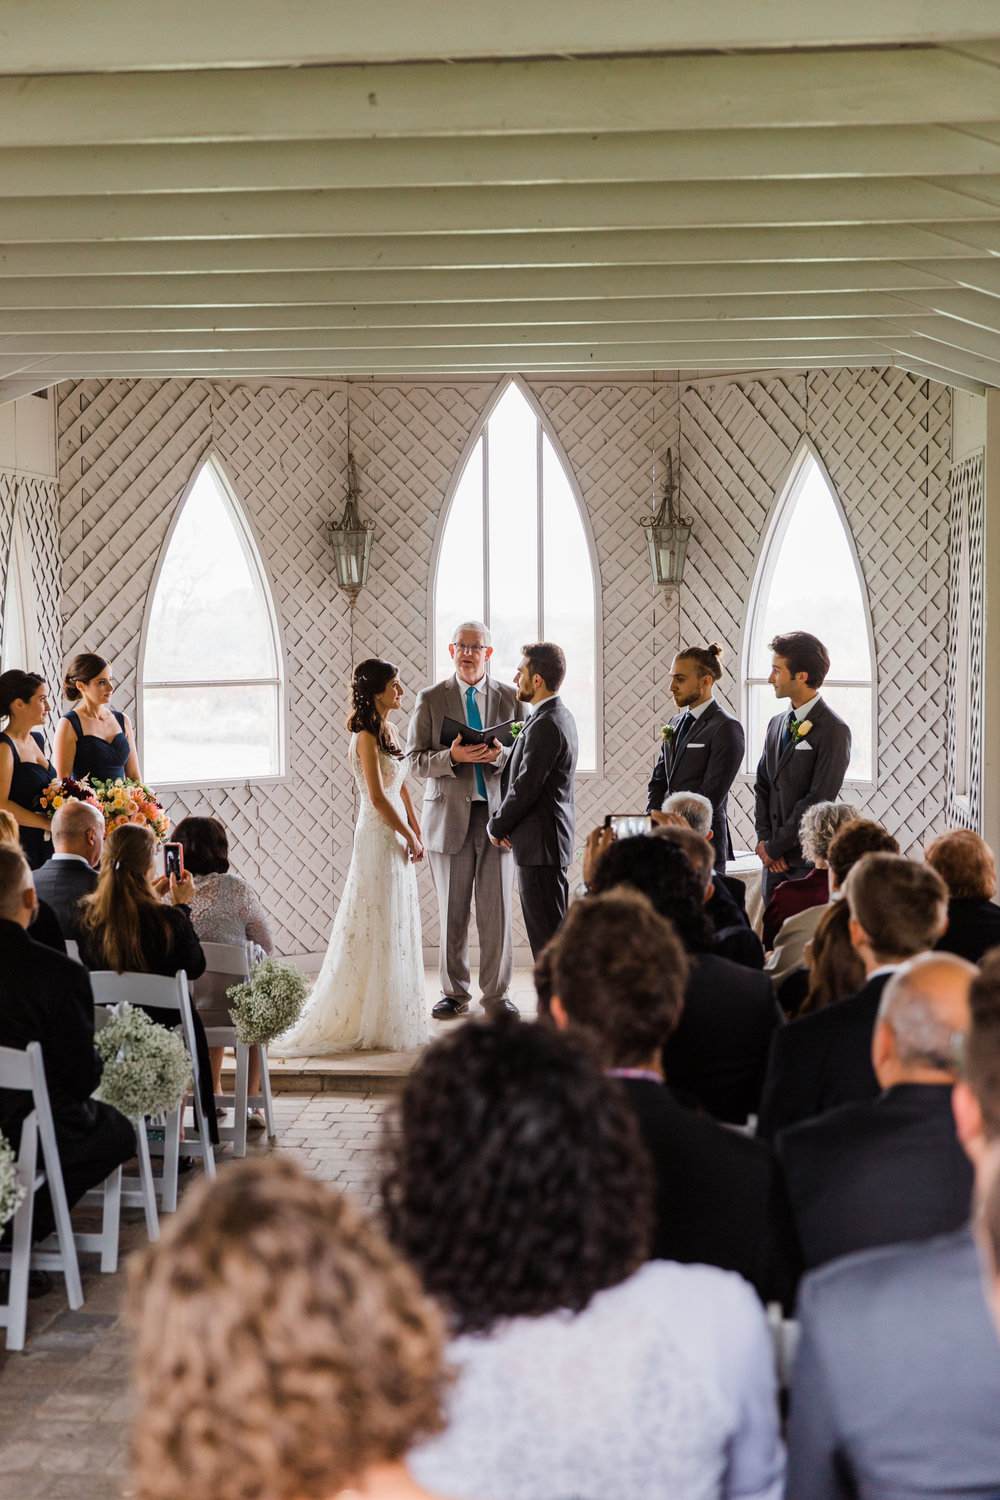 Amir-Golbazi-Danielle-Giroux-Photography_Toronto-Wedding_Cedarwood_Rachel-Paul_178.jpg